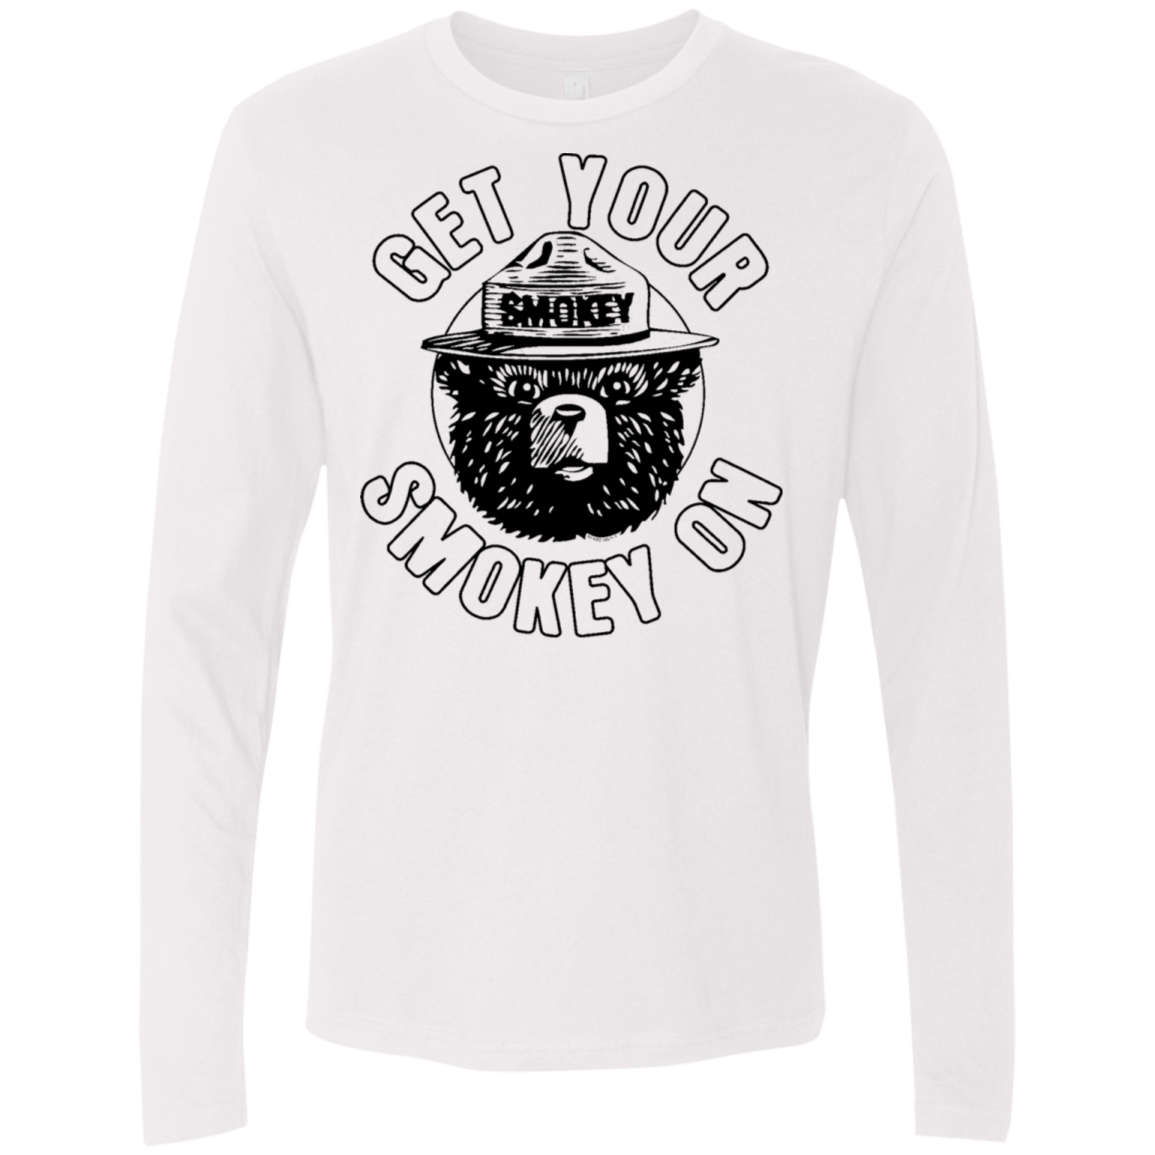 Get Your Smokey On Men's Long Sleeve Tee